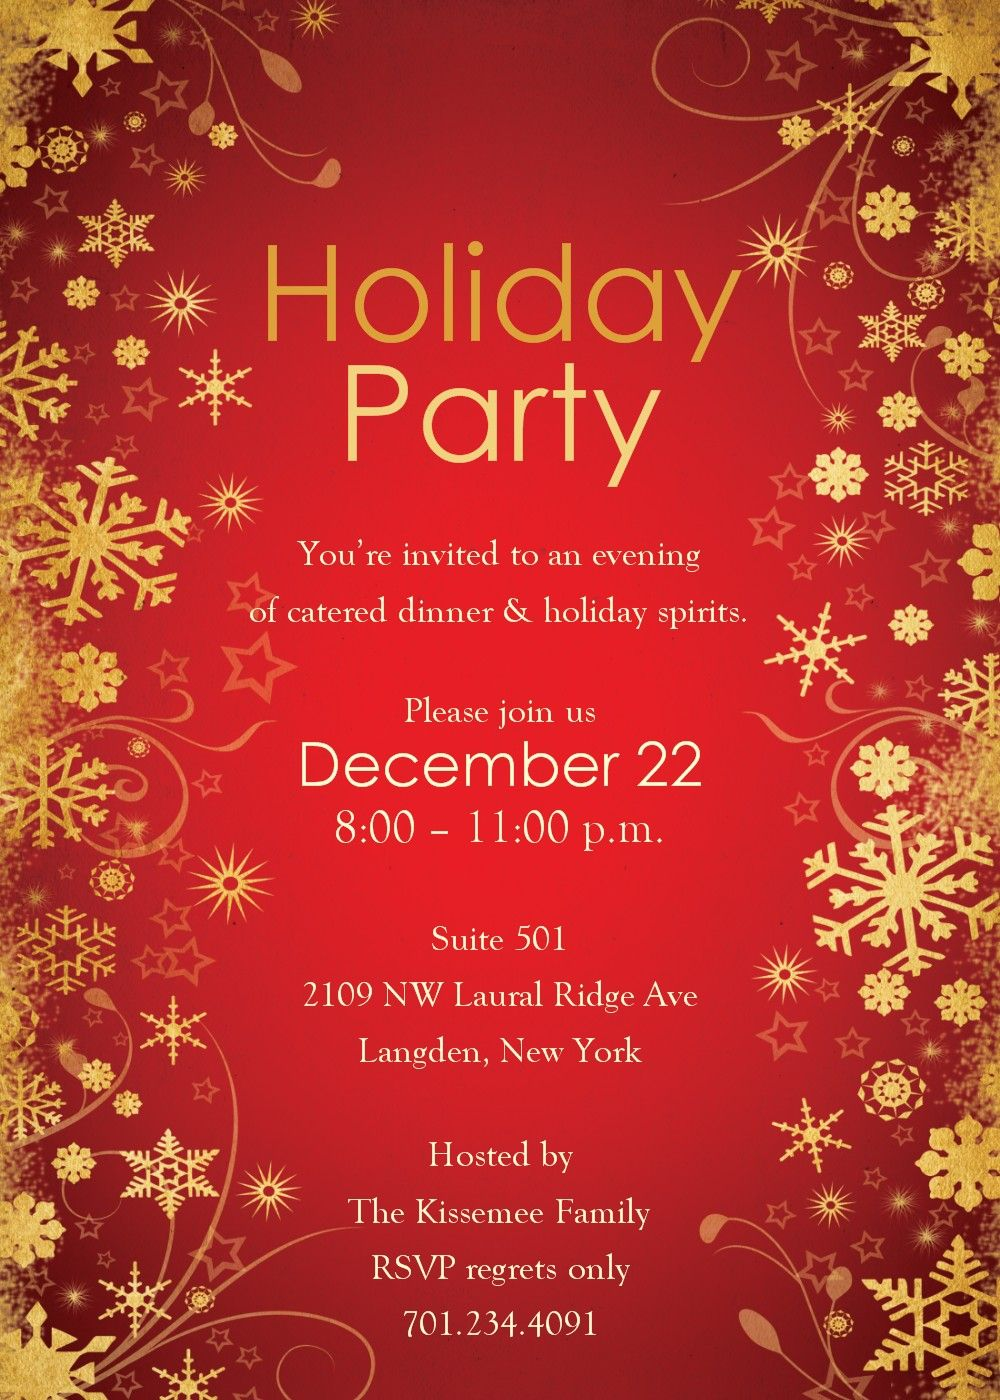 Free holiday party invitation templates agqszaoj pinteres free holiday party invitation templates agqszaoj more pronofoot35fo Gallery